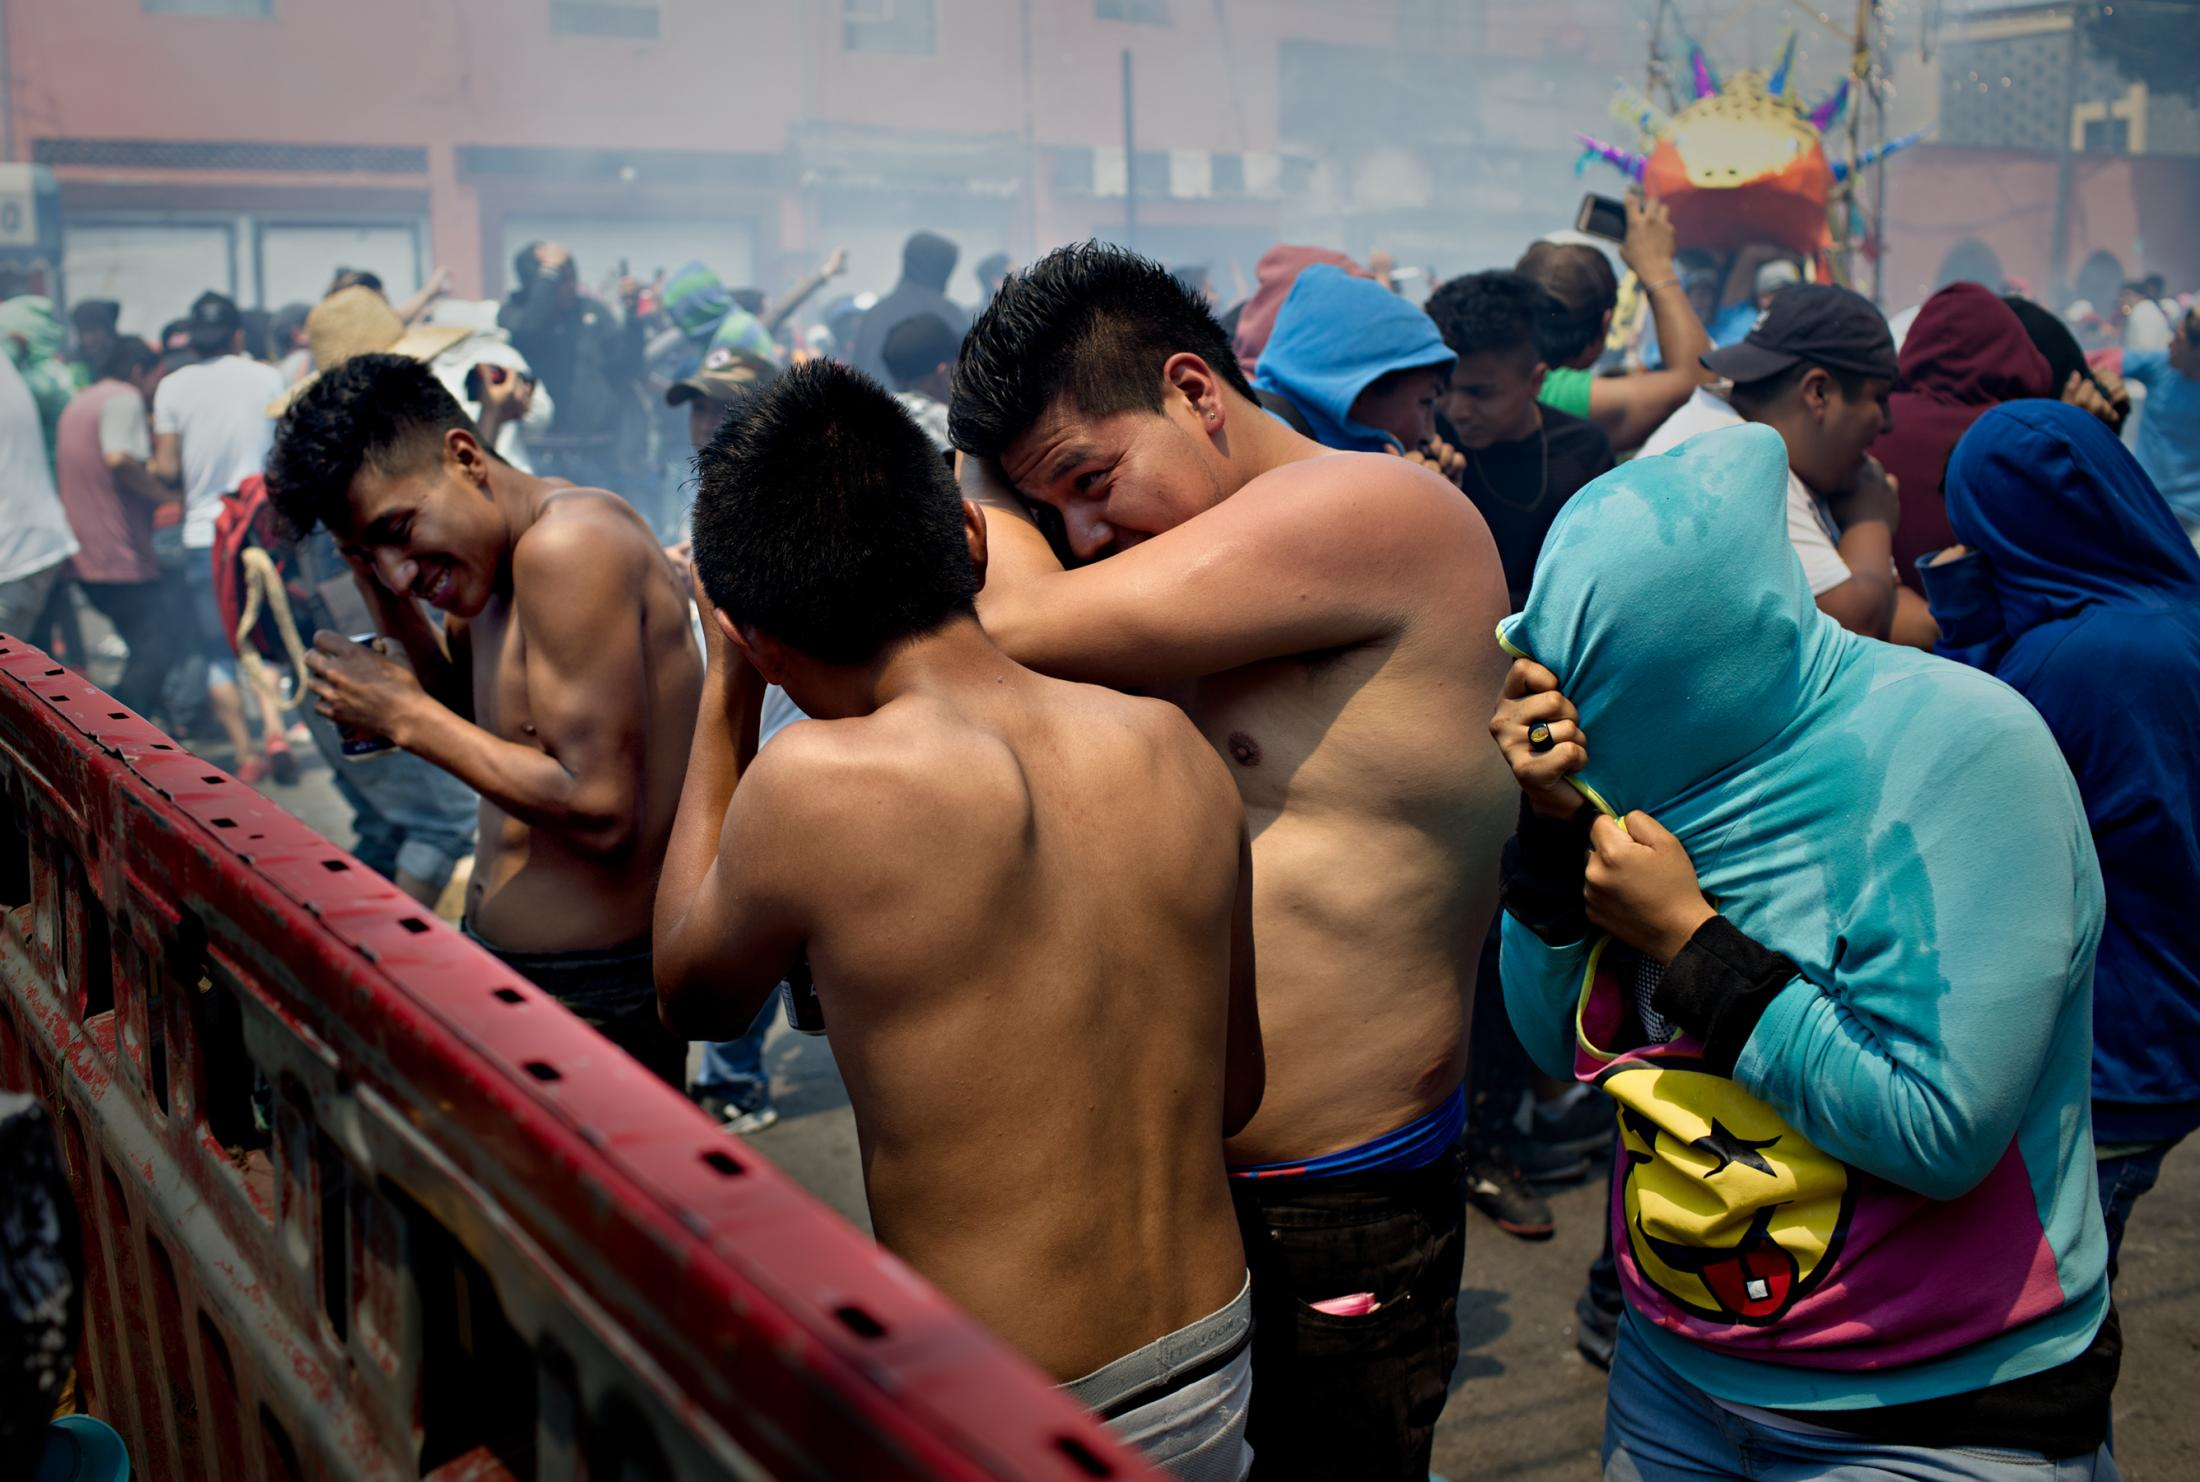 Teenagers show off their machismo by taking their shirts off during the celebration in which fireworks goes off among the crowd. Some get injured but they accept it to be the price to be paid for their masculinity.